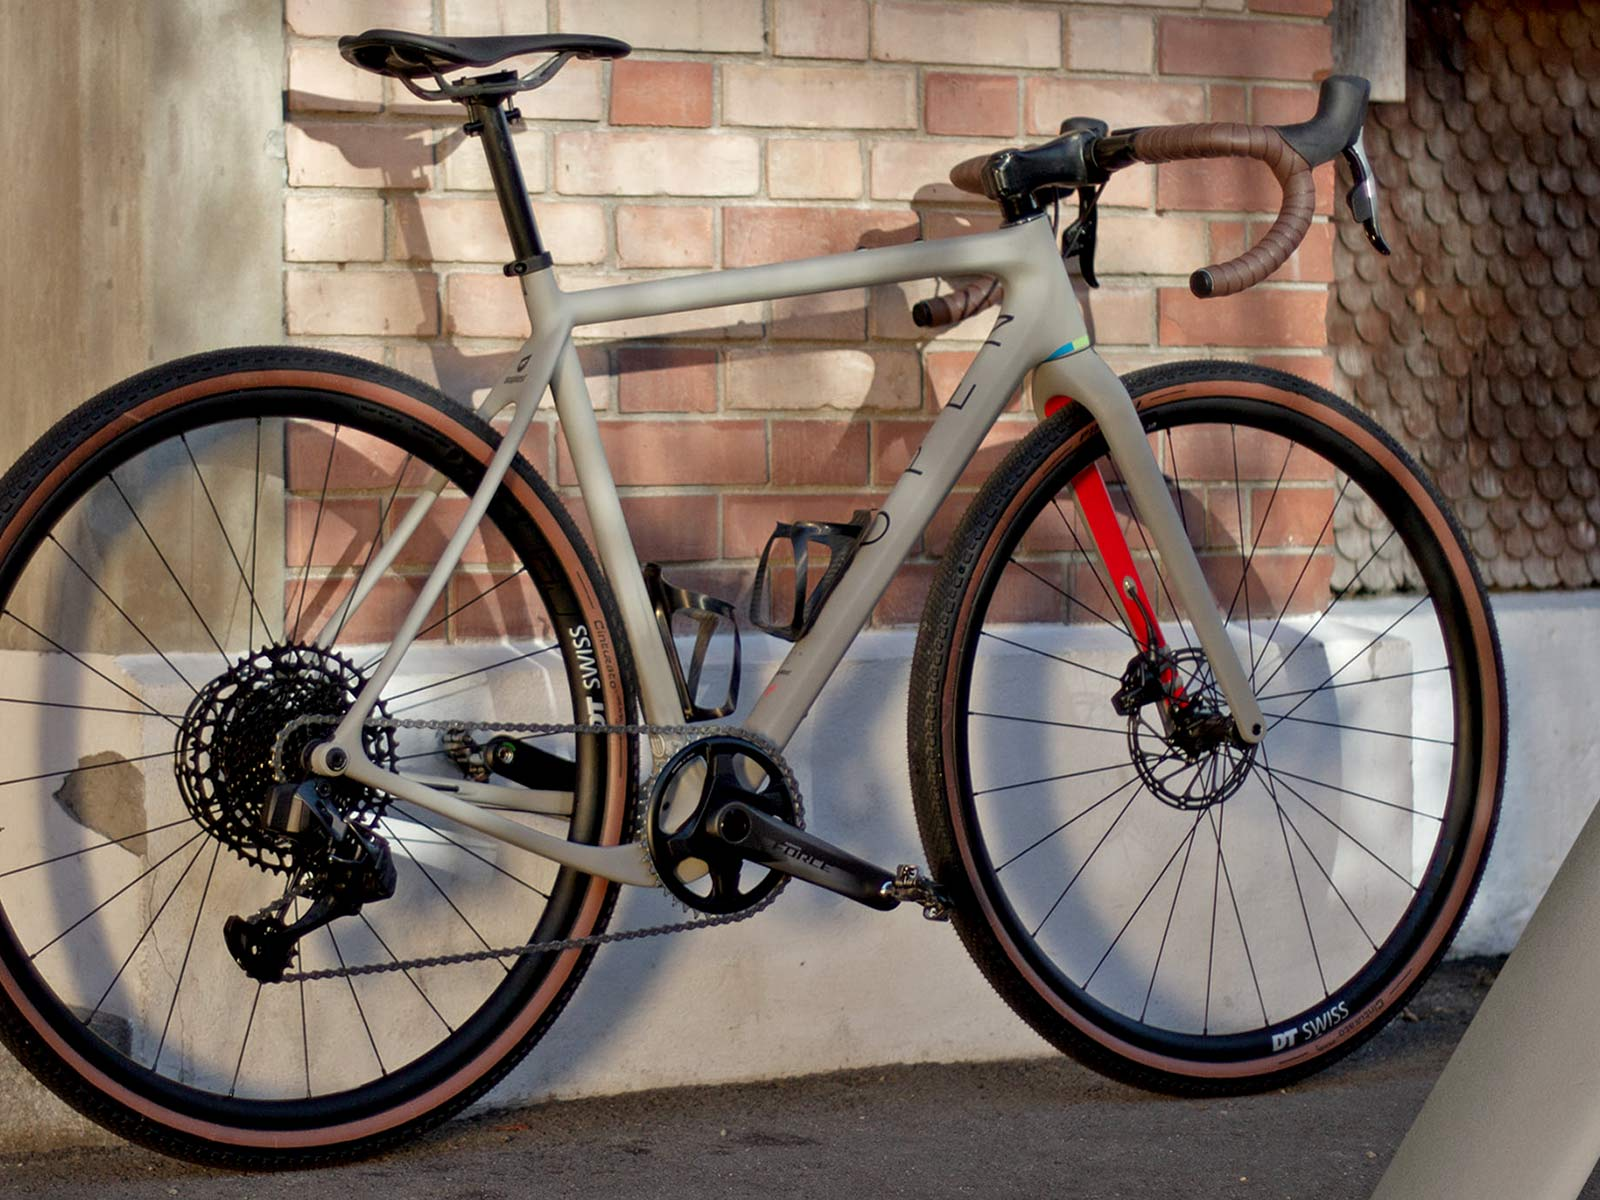 OPEN x Suplest ultra-limited edition UP gravel bike